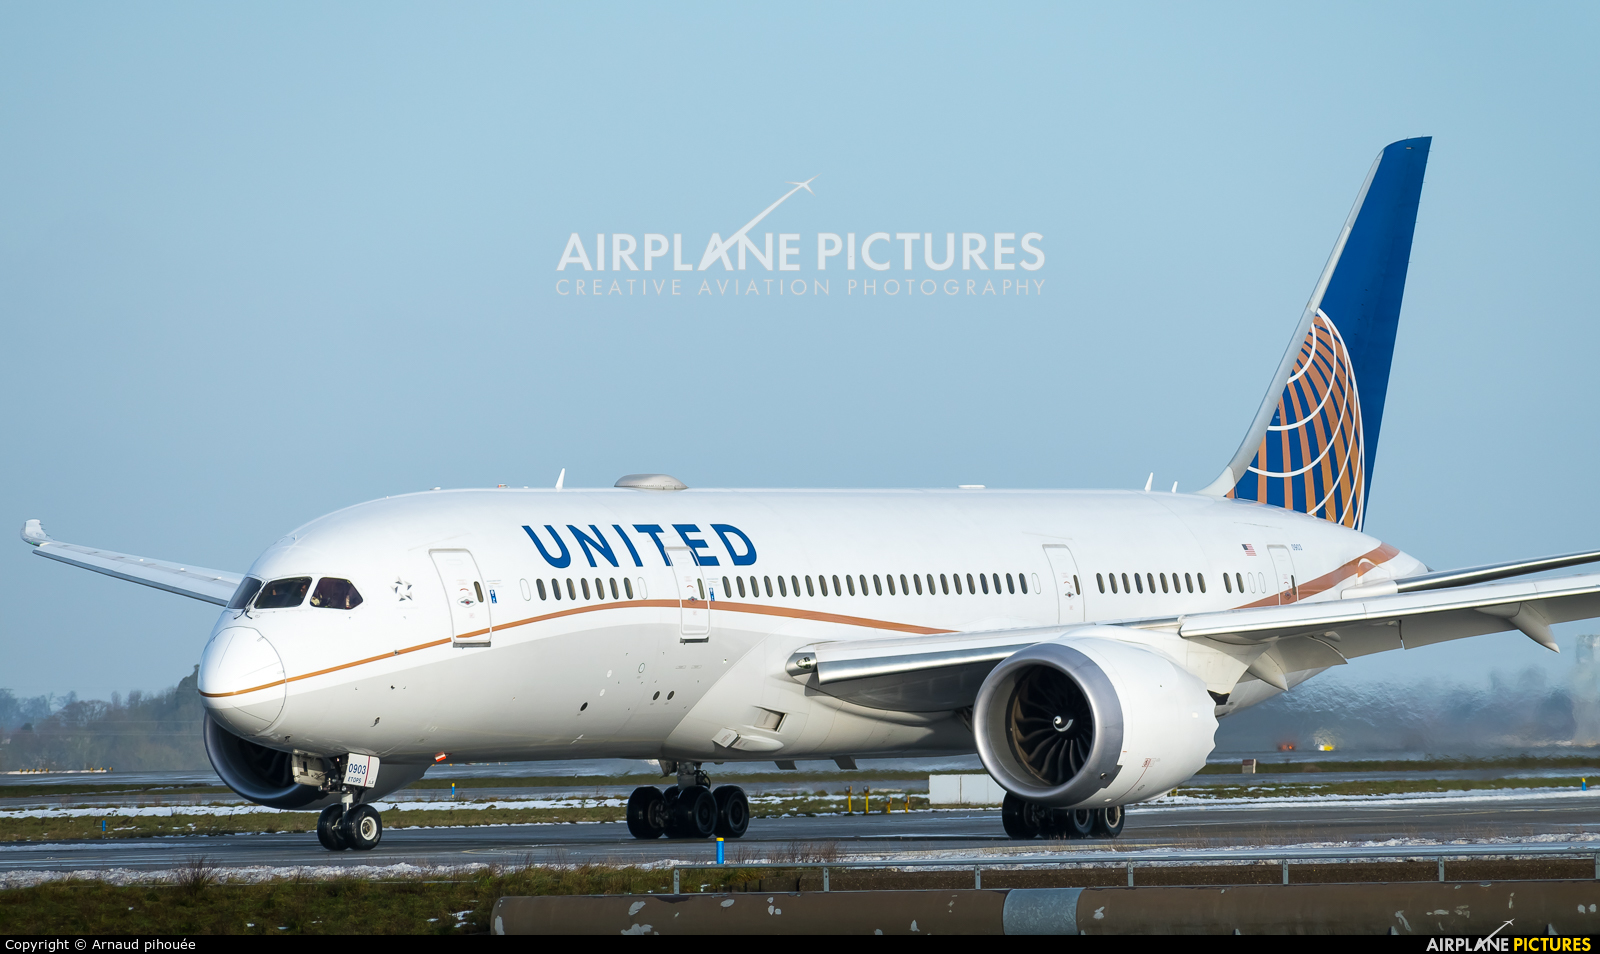 United Airlines N27903 aircraft at Paris - Charles de Gaulle